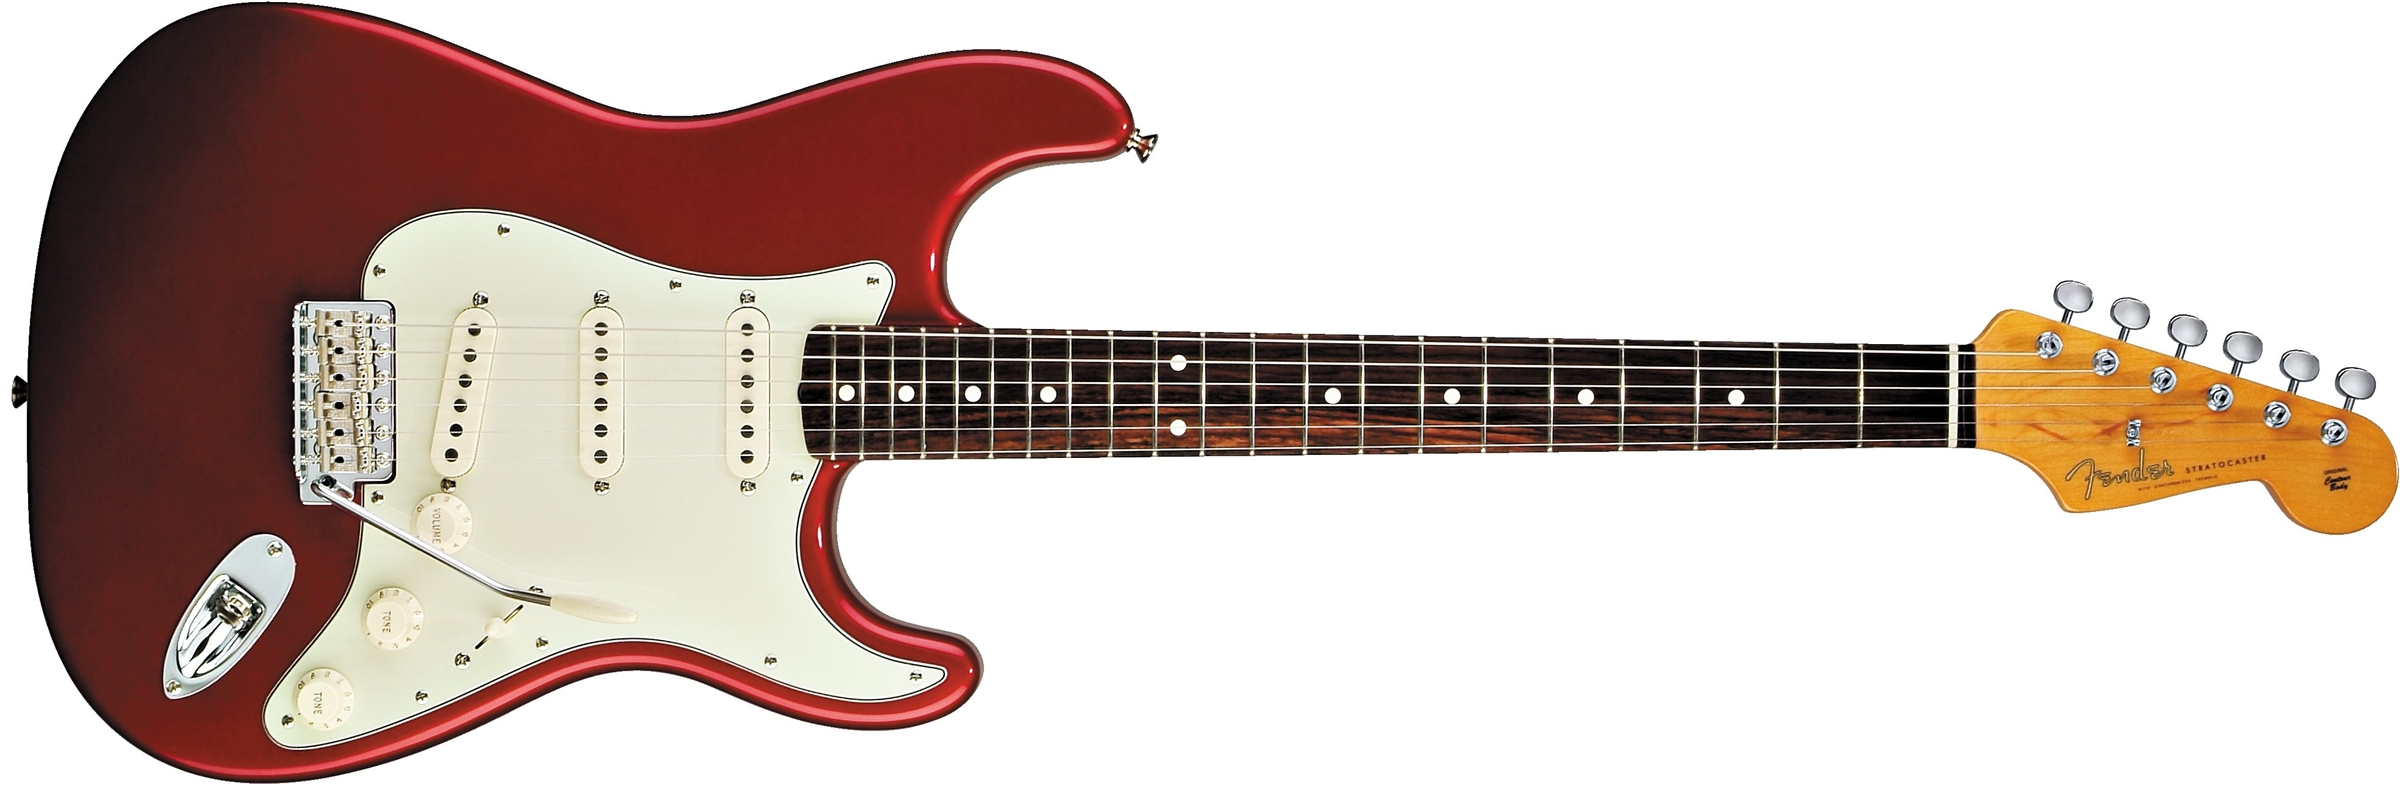 Fender Classic Series '60s Stratocaster® Candy Apple Red Rosewood Fingerboard Electric Guitar